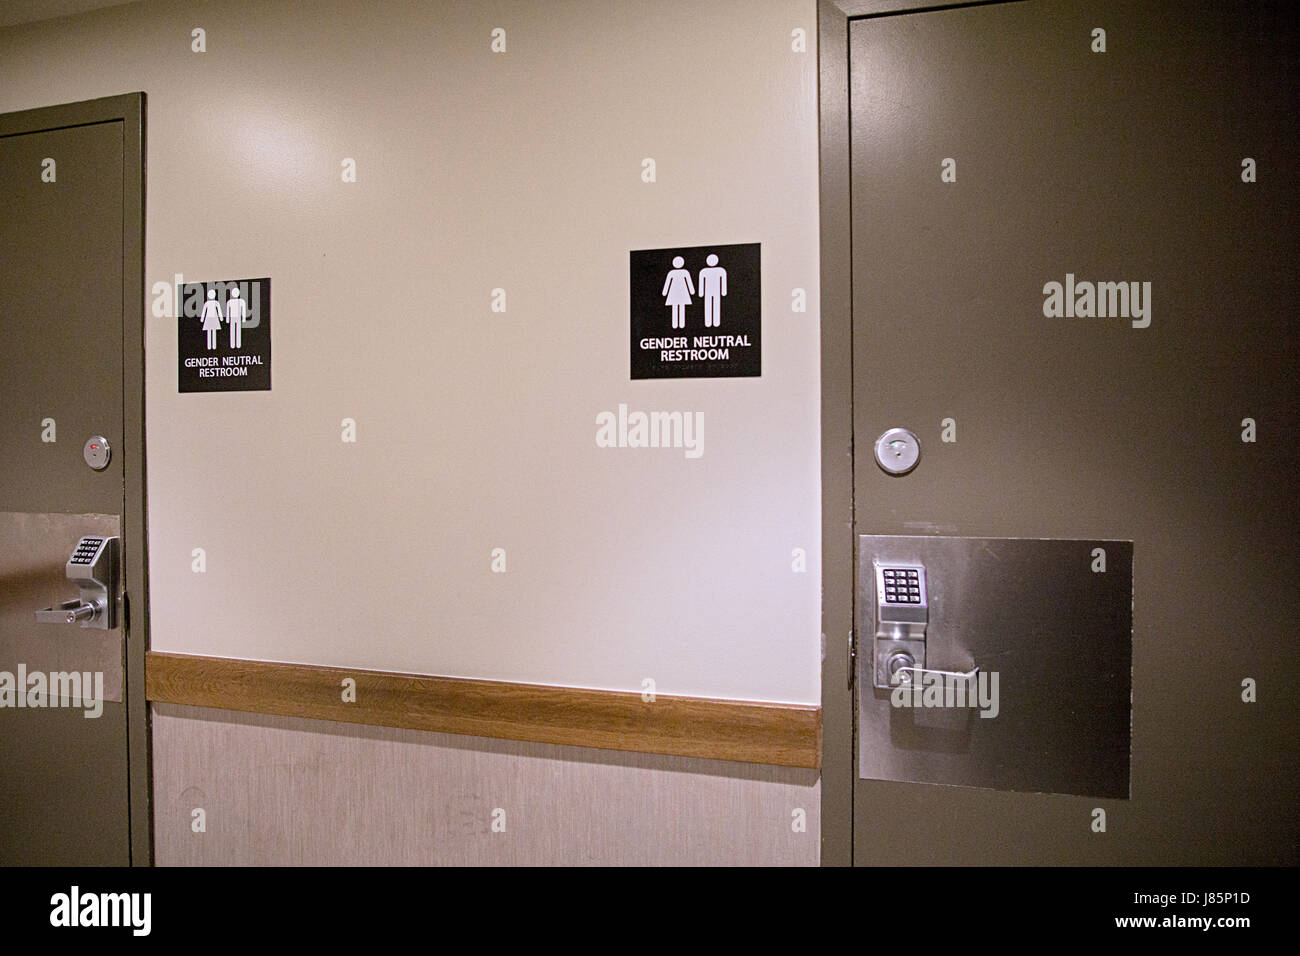 Gender neutral restrooms at Starbucks on Park Avenue and 34th Street in Manhattan, New York City. - Stock Image